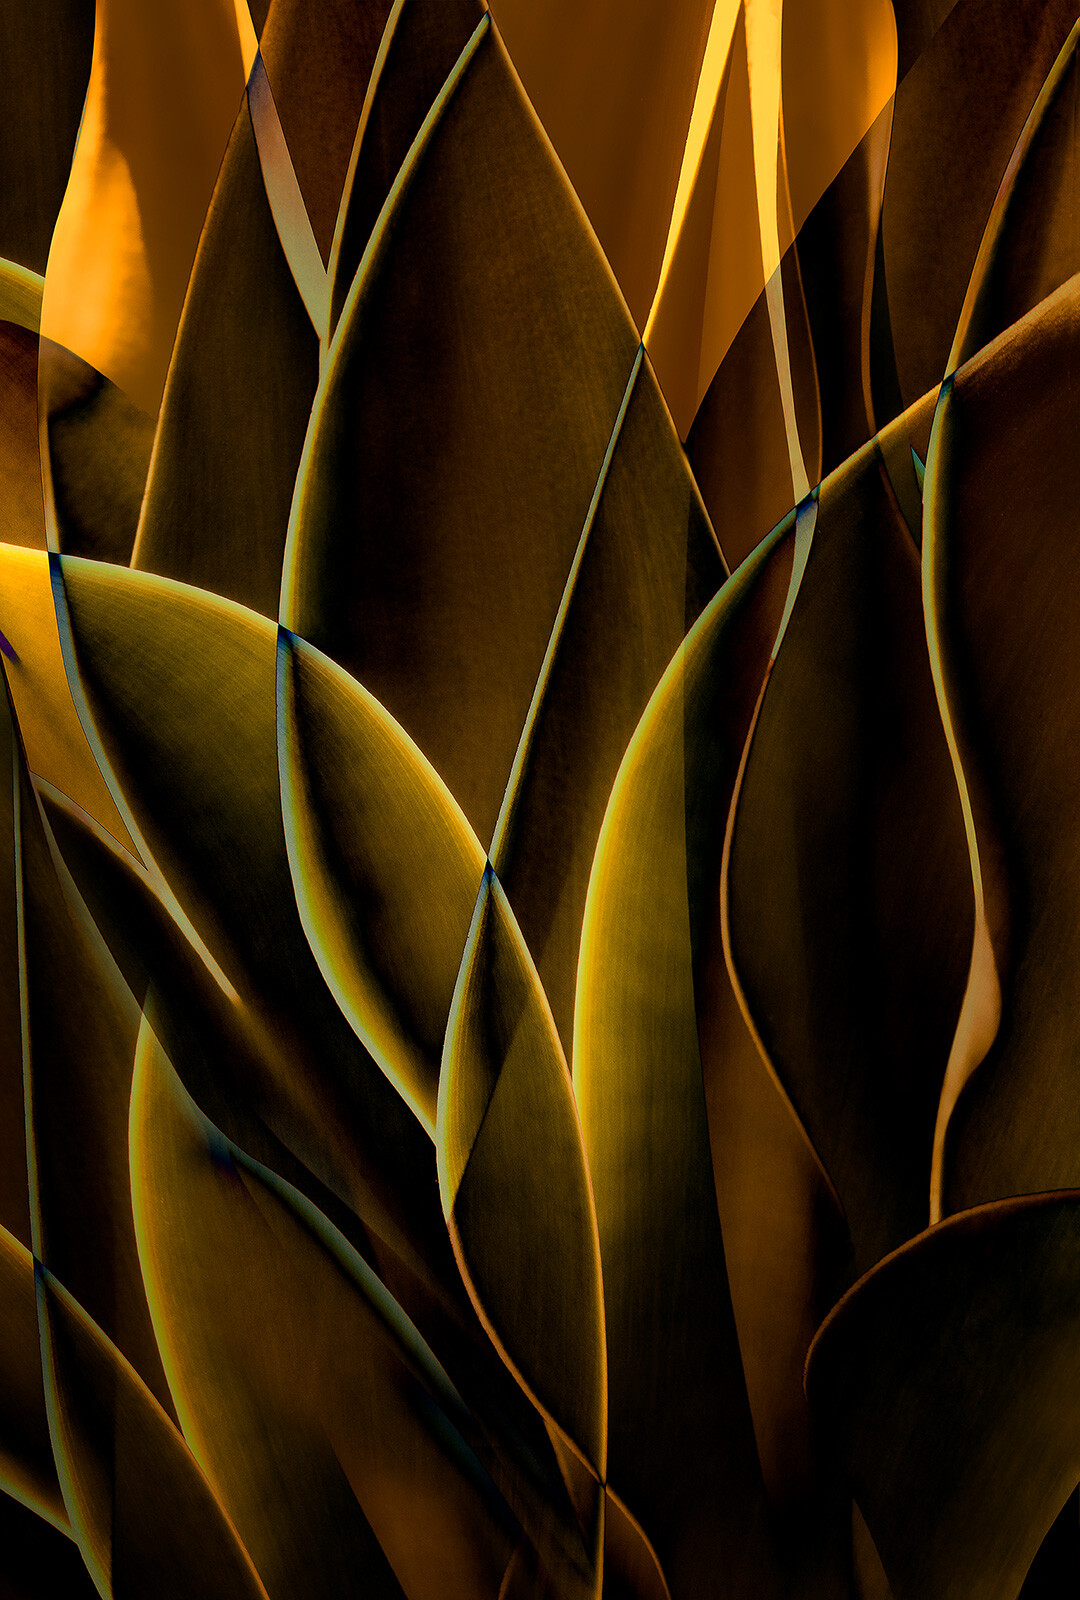 Cactus Abstraction 01 von Ed Freeman